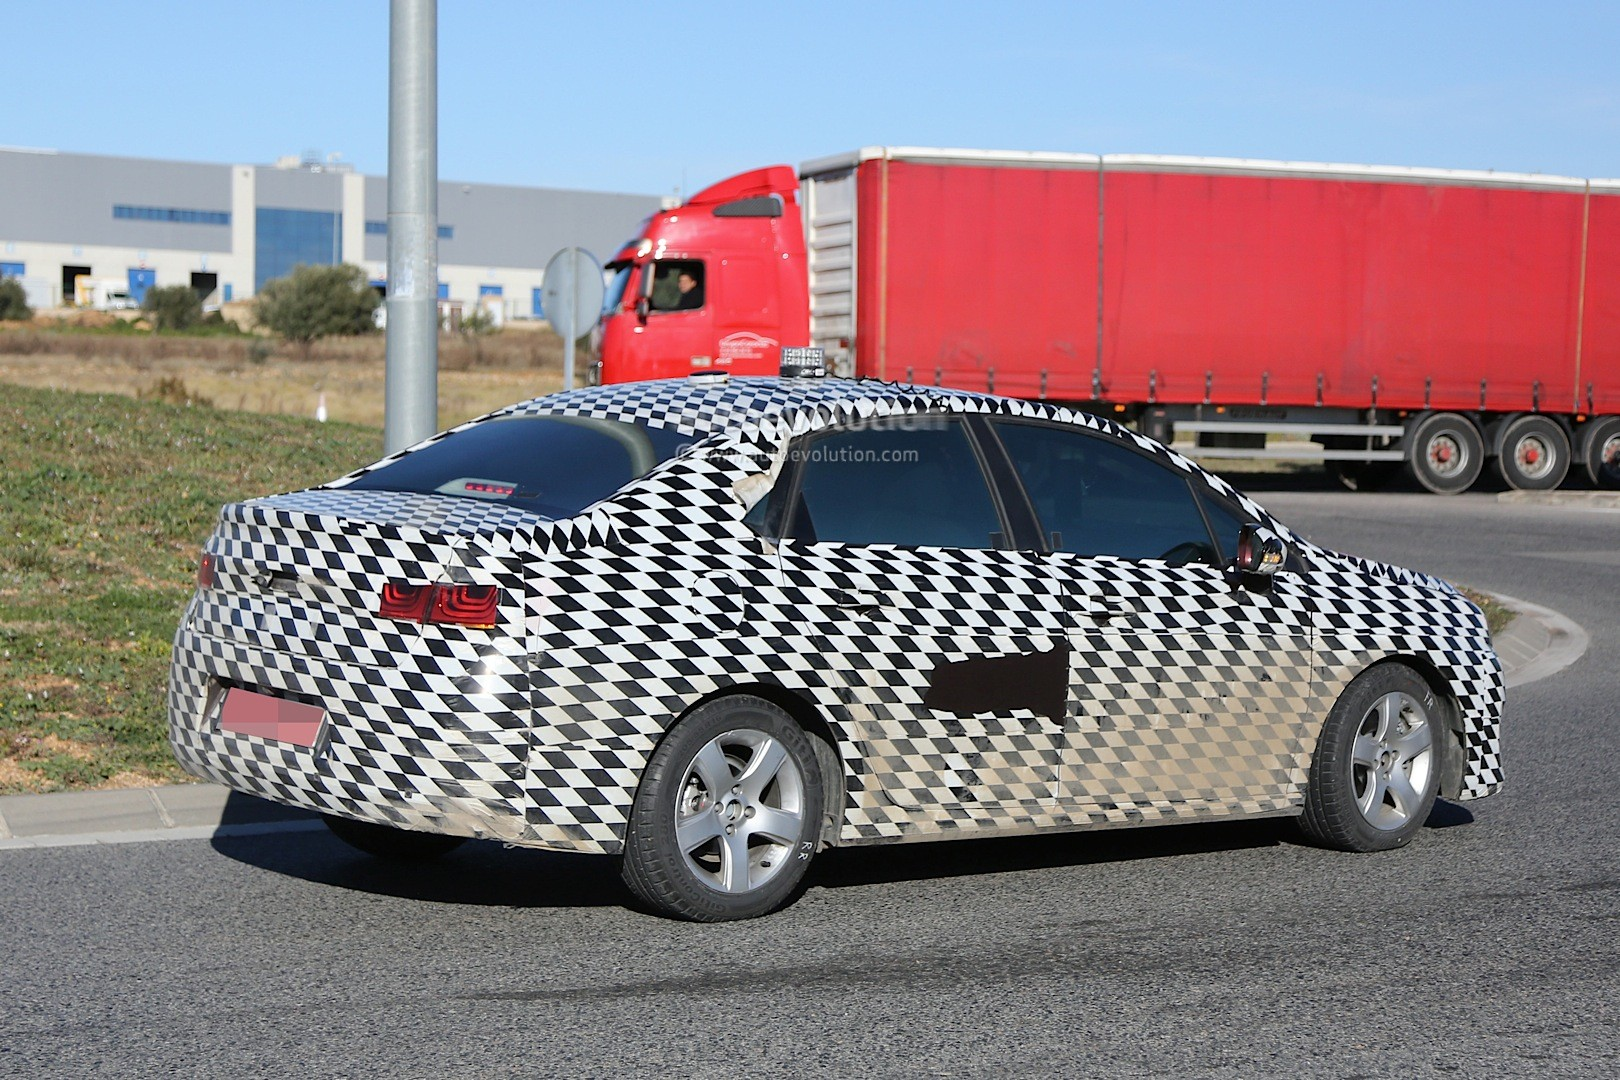 2015 - [Citroën] C4 C-Quatre - Page 2 Mystery-citroen-compact-sedan-spied-testing-in-spain-could-be-the-new-c4-lunge_6